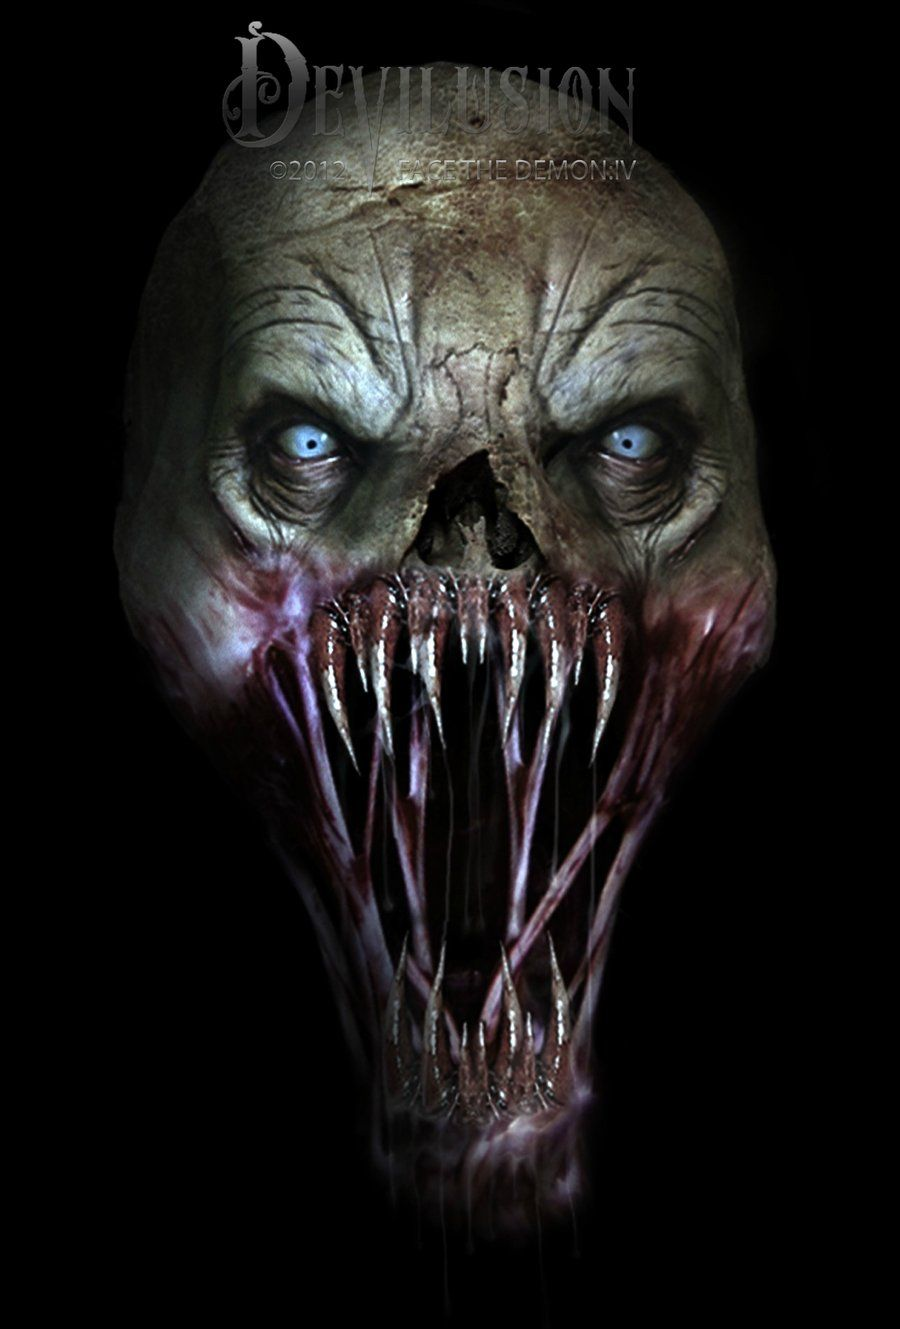 Face The Demon:IV by D3vilusion on DeviantArt